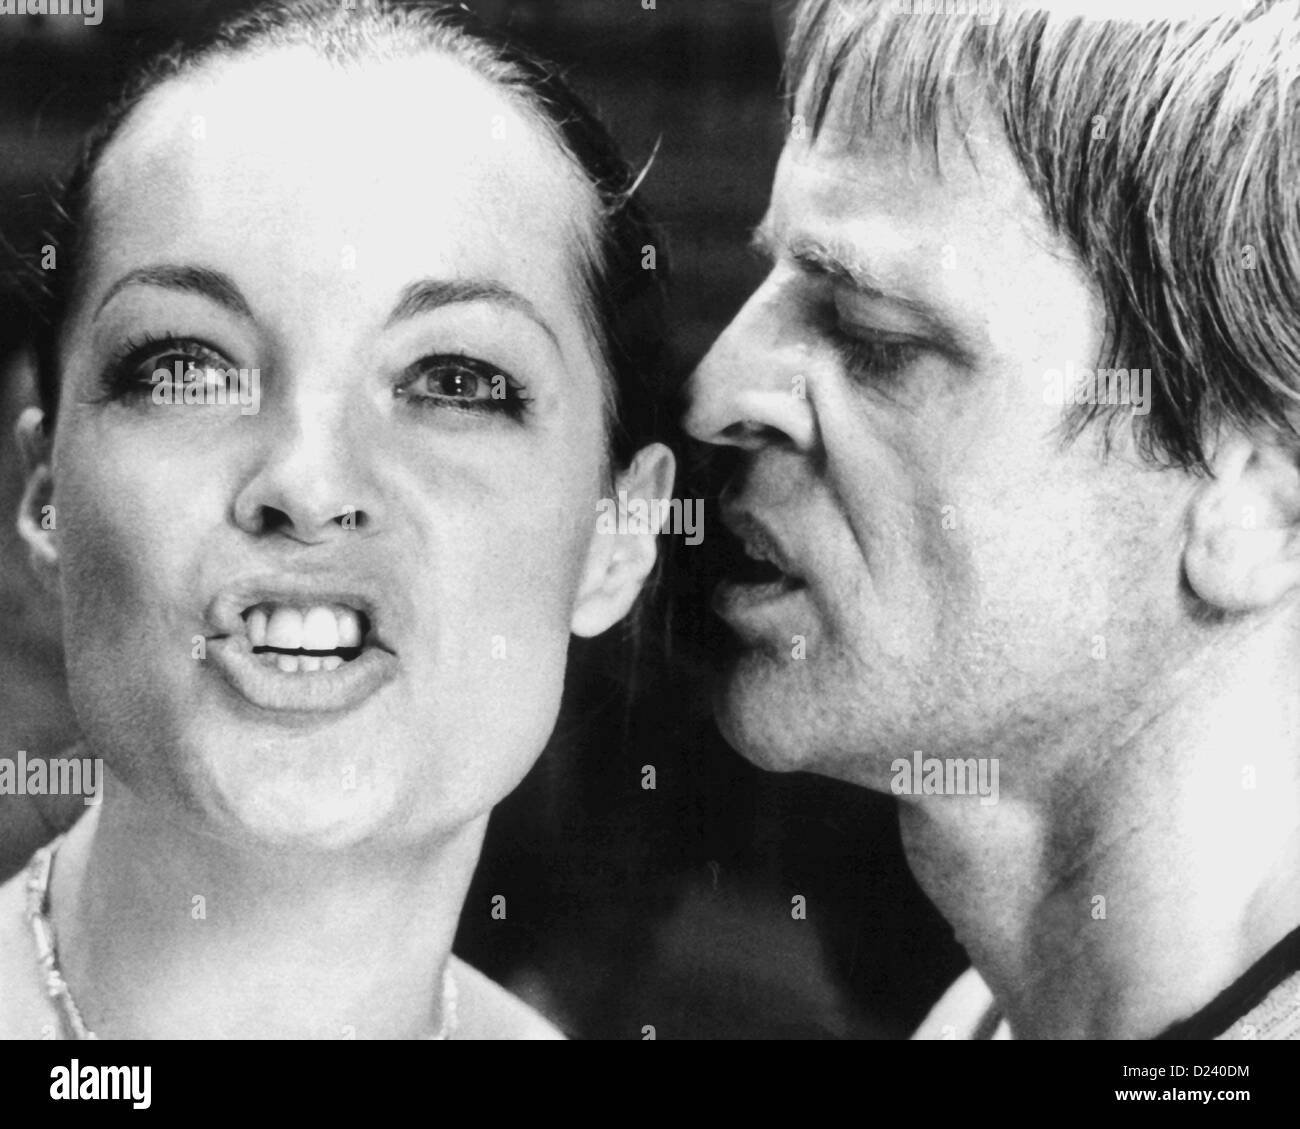 (dpa files) - German actor Klaus Kinski and Austrian-born actress Romy Schneider in a movie scene of 'L'Important c'est d'aimer' ('The Main Thing Is to Love'), 1974. Schneider became famous at the age of 17 in the title of role of the trilogy 'Sissi' in the 1950s. Later she starred in films such as 'La piscine' ('The Swimmingpool'/'The Sinners', 1969) and 'Garde a vue' ('Under Suspicion', 1981). Kinski, an 'enfant terrible' of the film industry, starred in such films as 'Fitzcarraldo' and 'Nosferatu: Phantom der Nacht' ('Nosferatu the Vampire'). Stock Photo